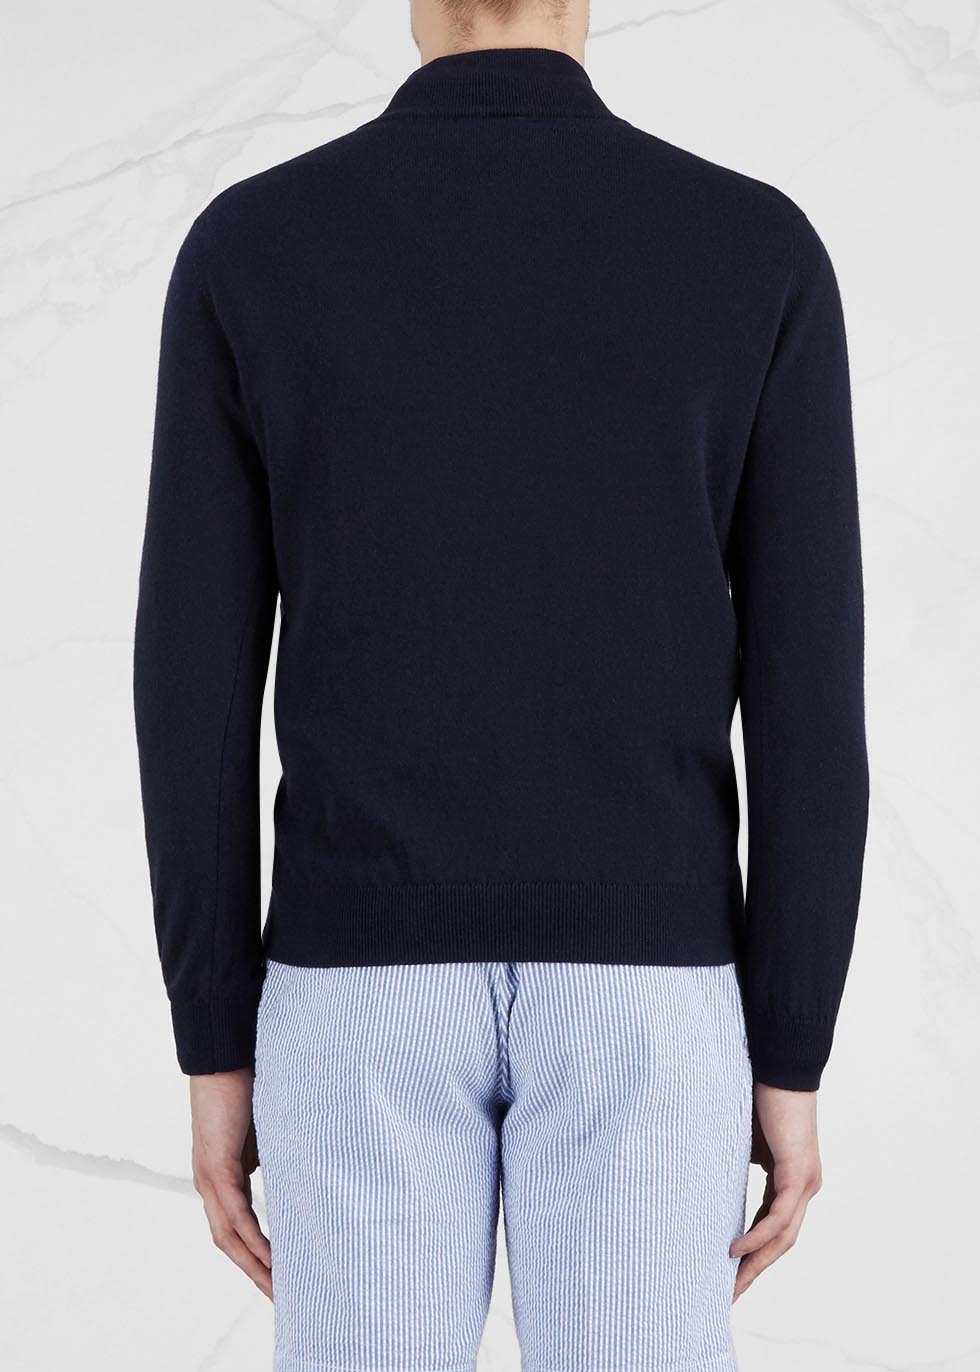 Navy cashmere jumper - Johnstons of Elgin